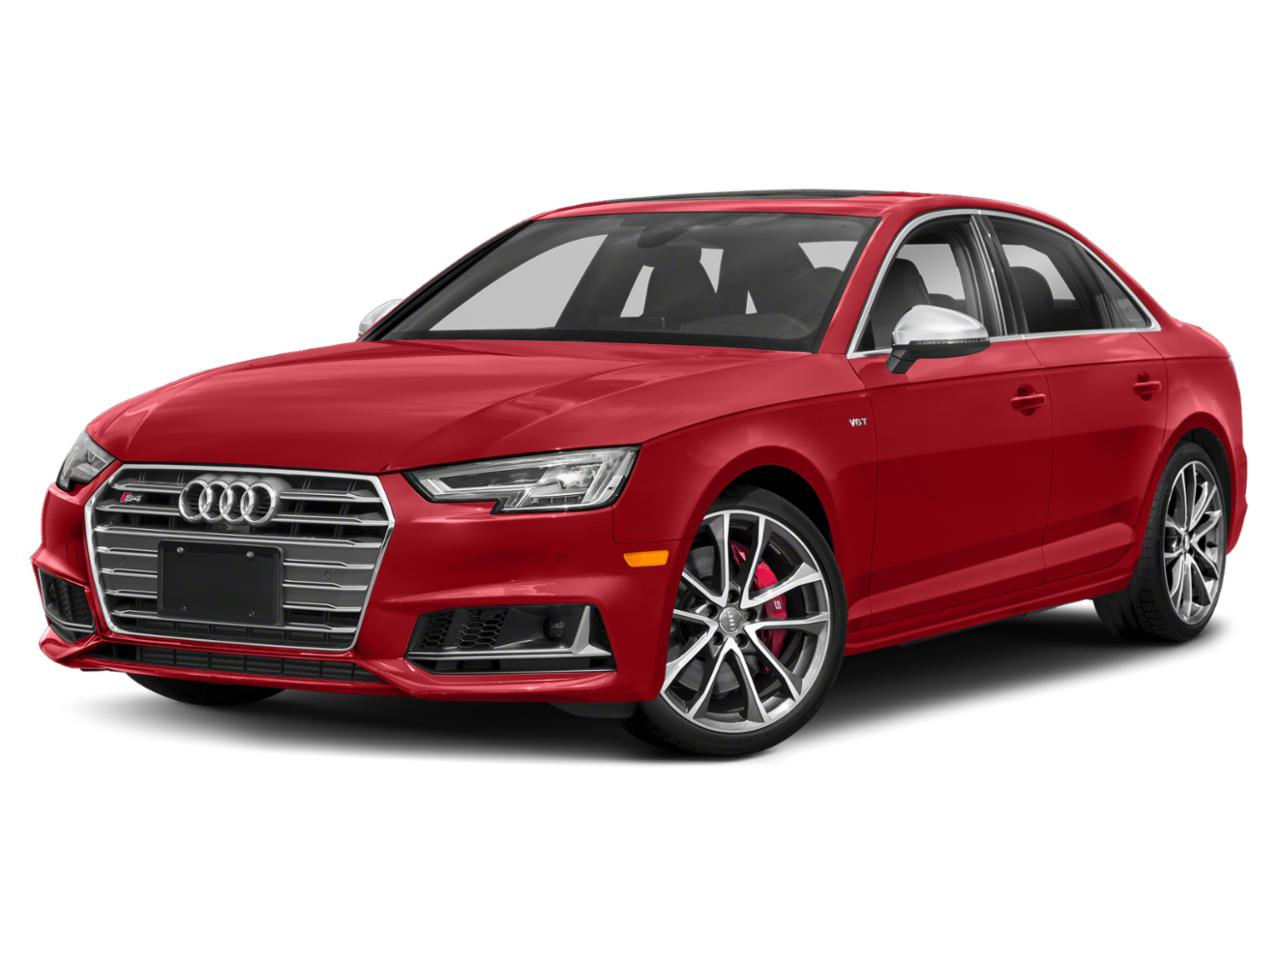 2018 Audi S4 Vehicle Photo in Allentown, PA 18103